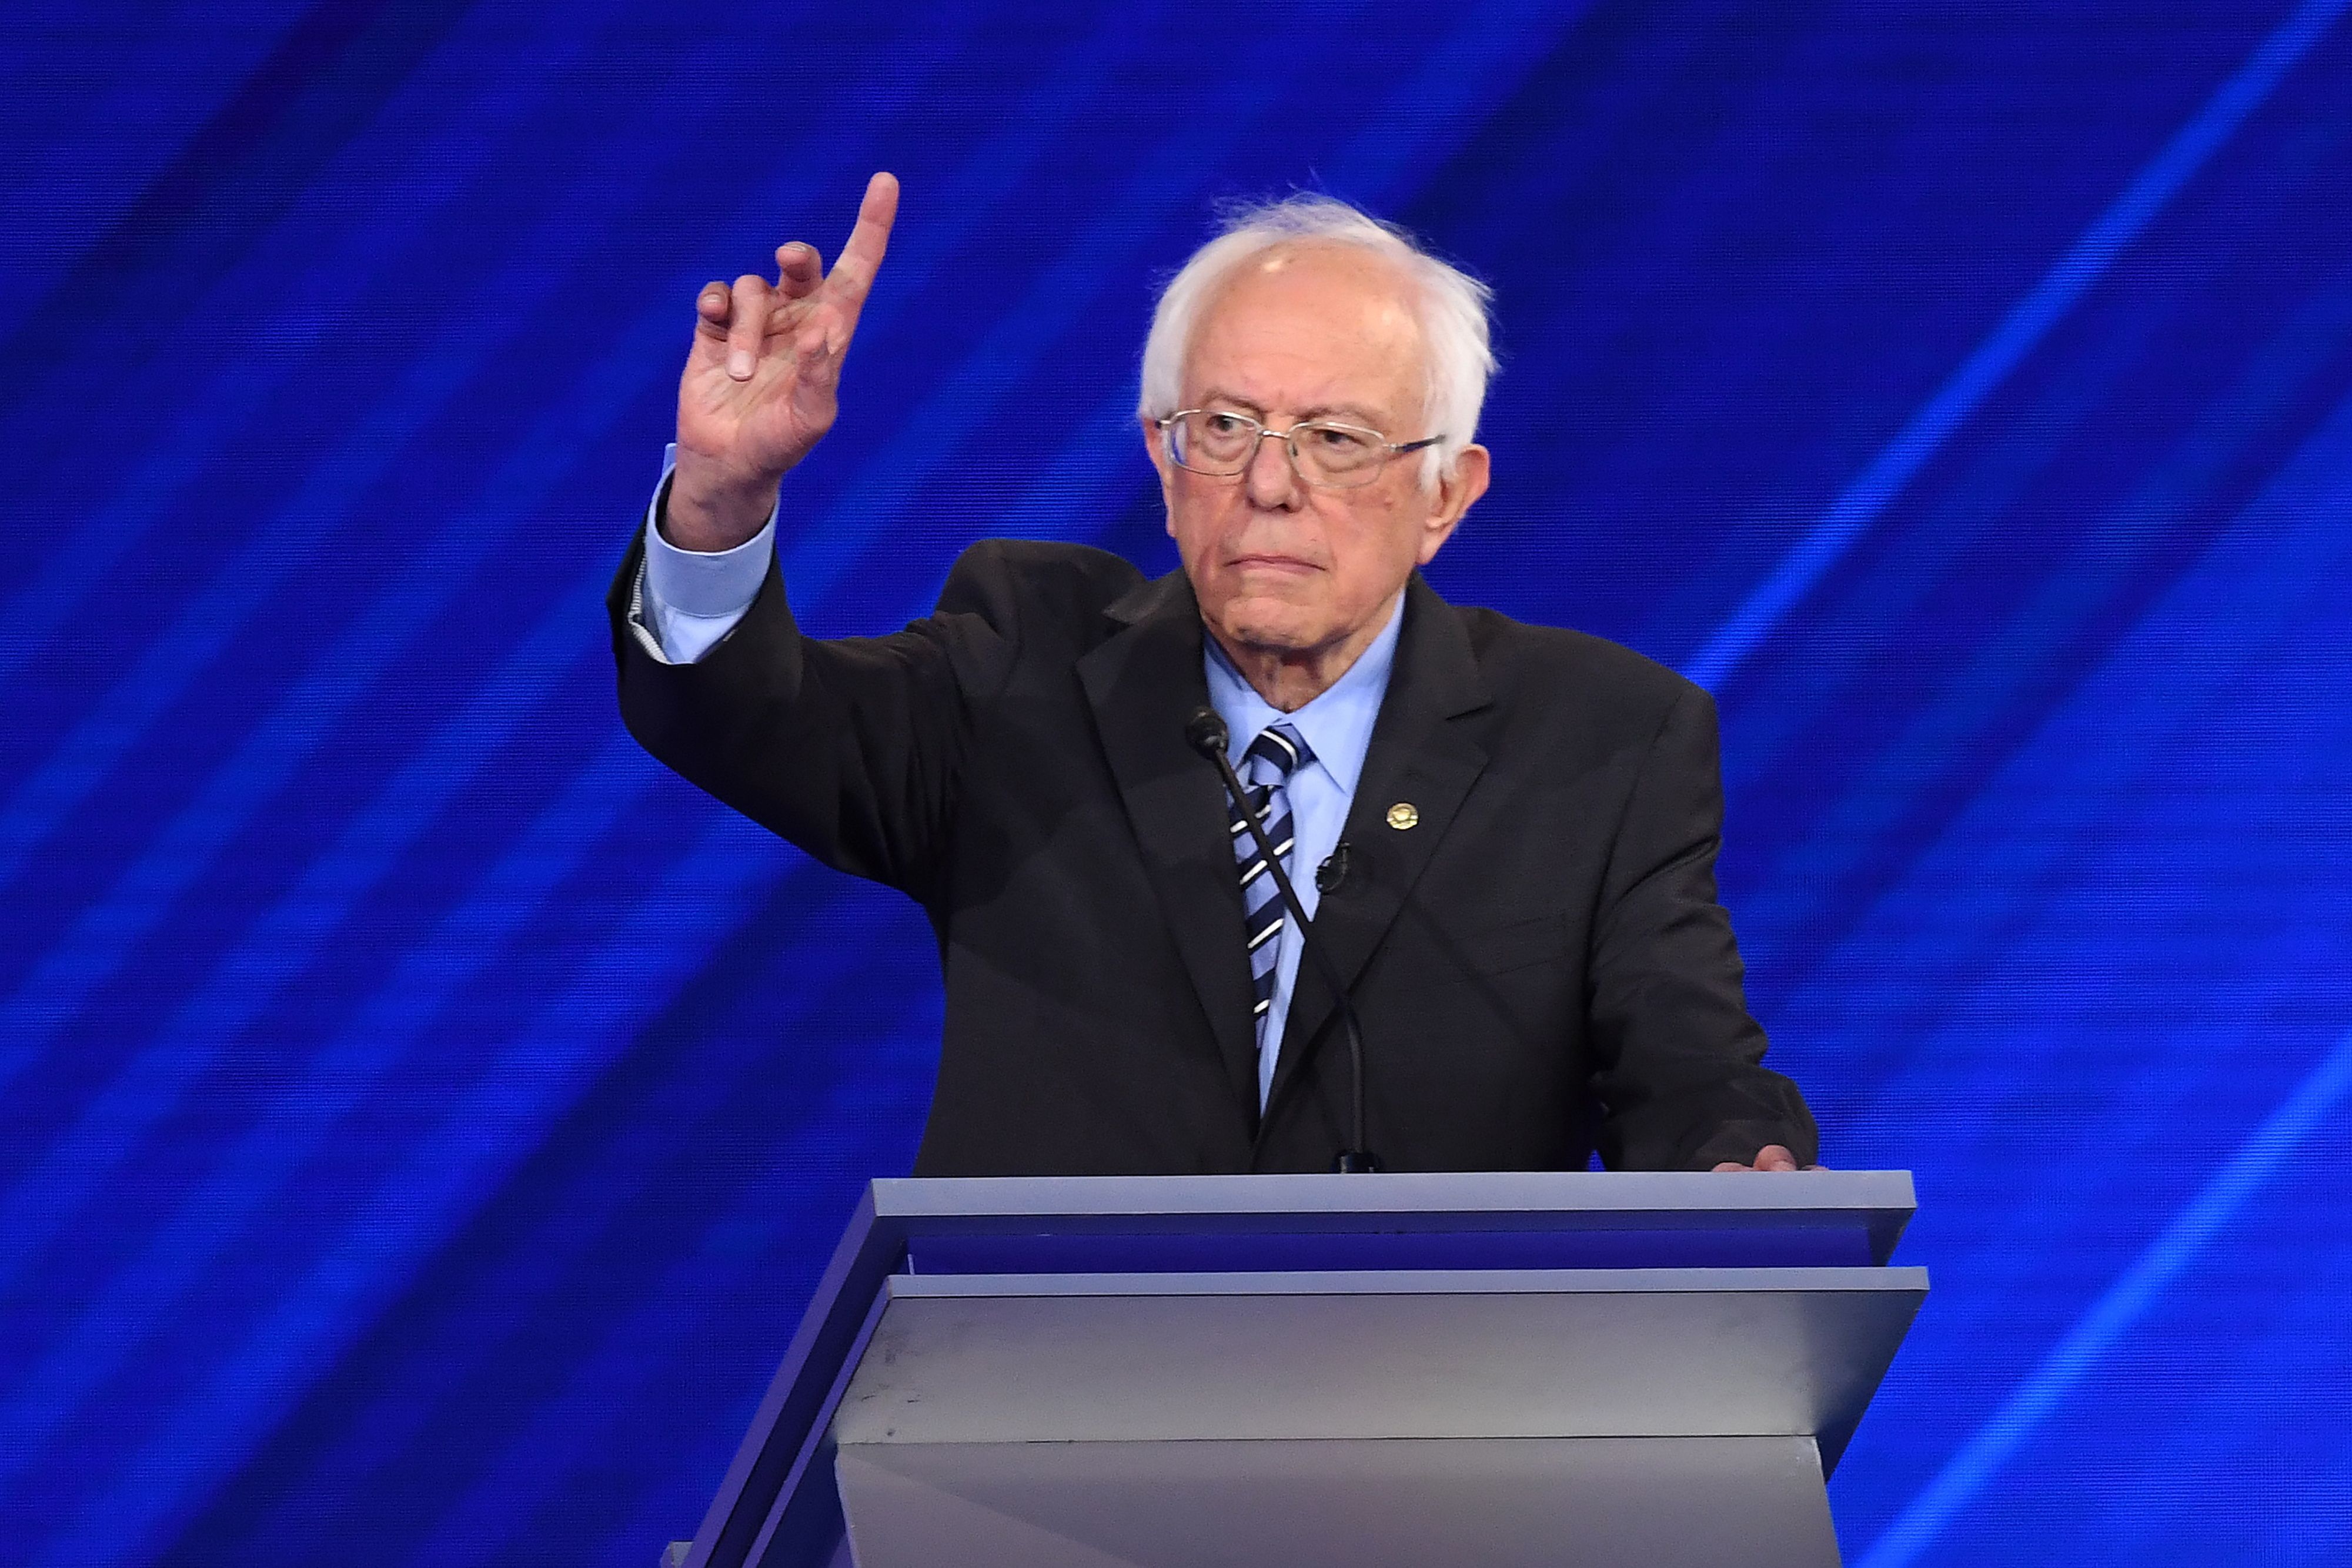 Democratic presidential hopeful Bernie Sanders will miss two of the only national events on LGBT+ issues